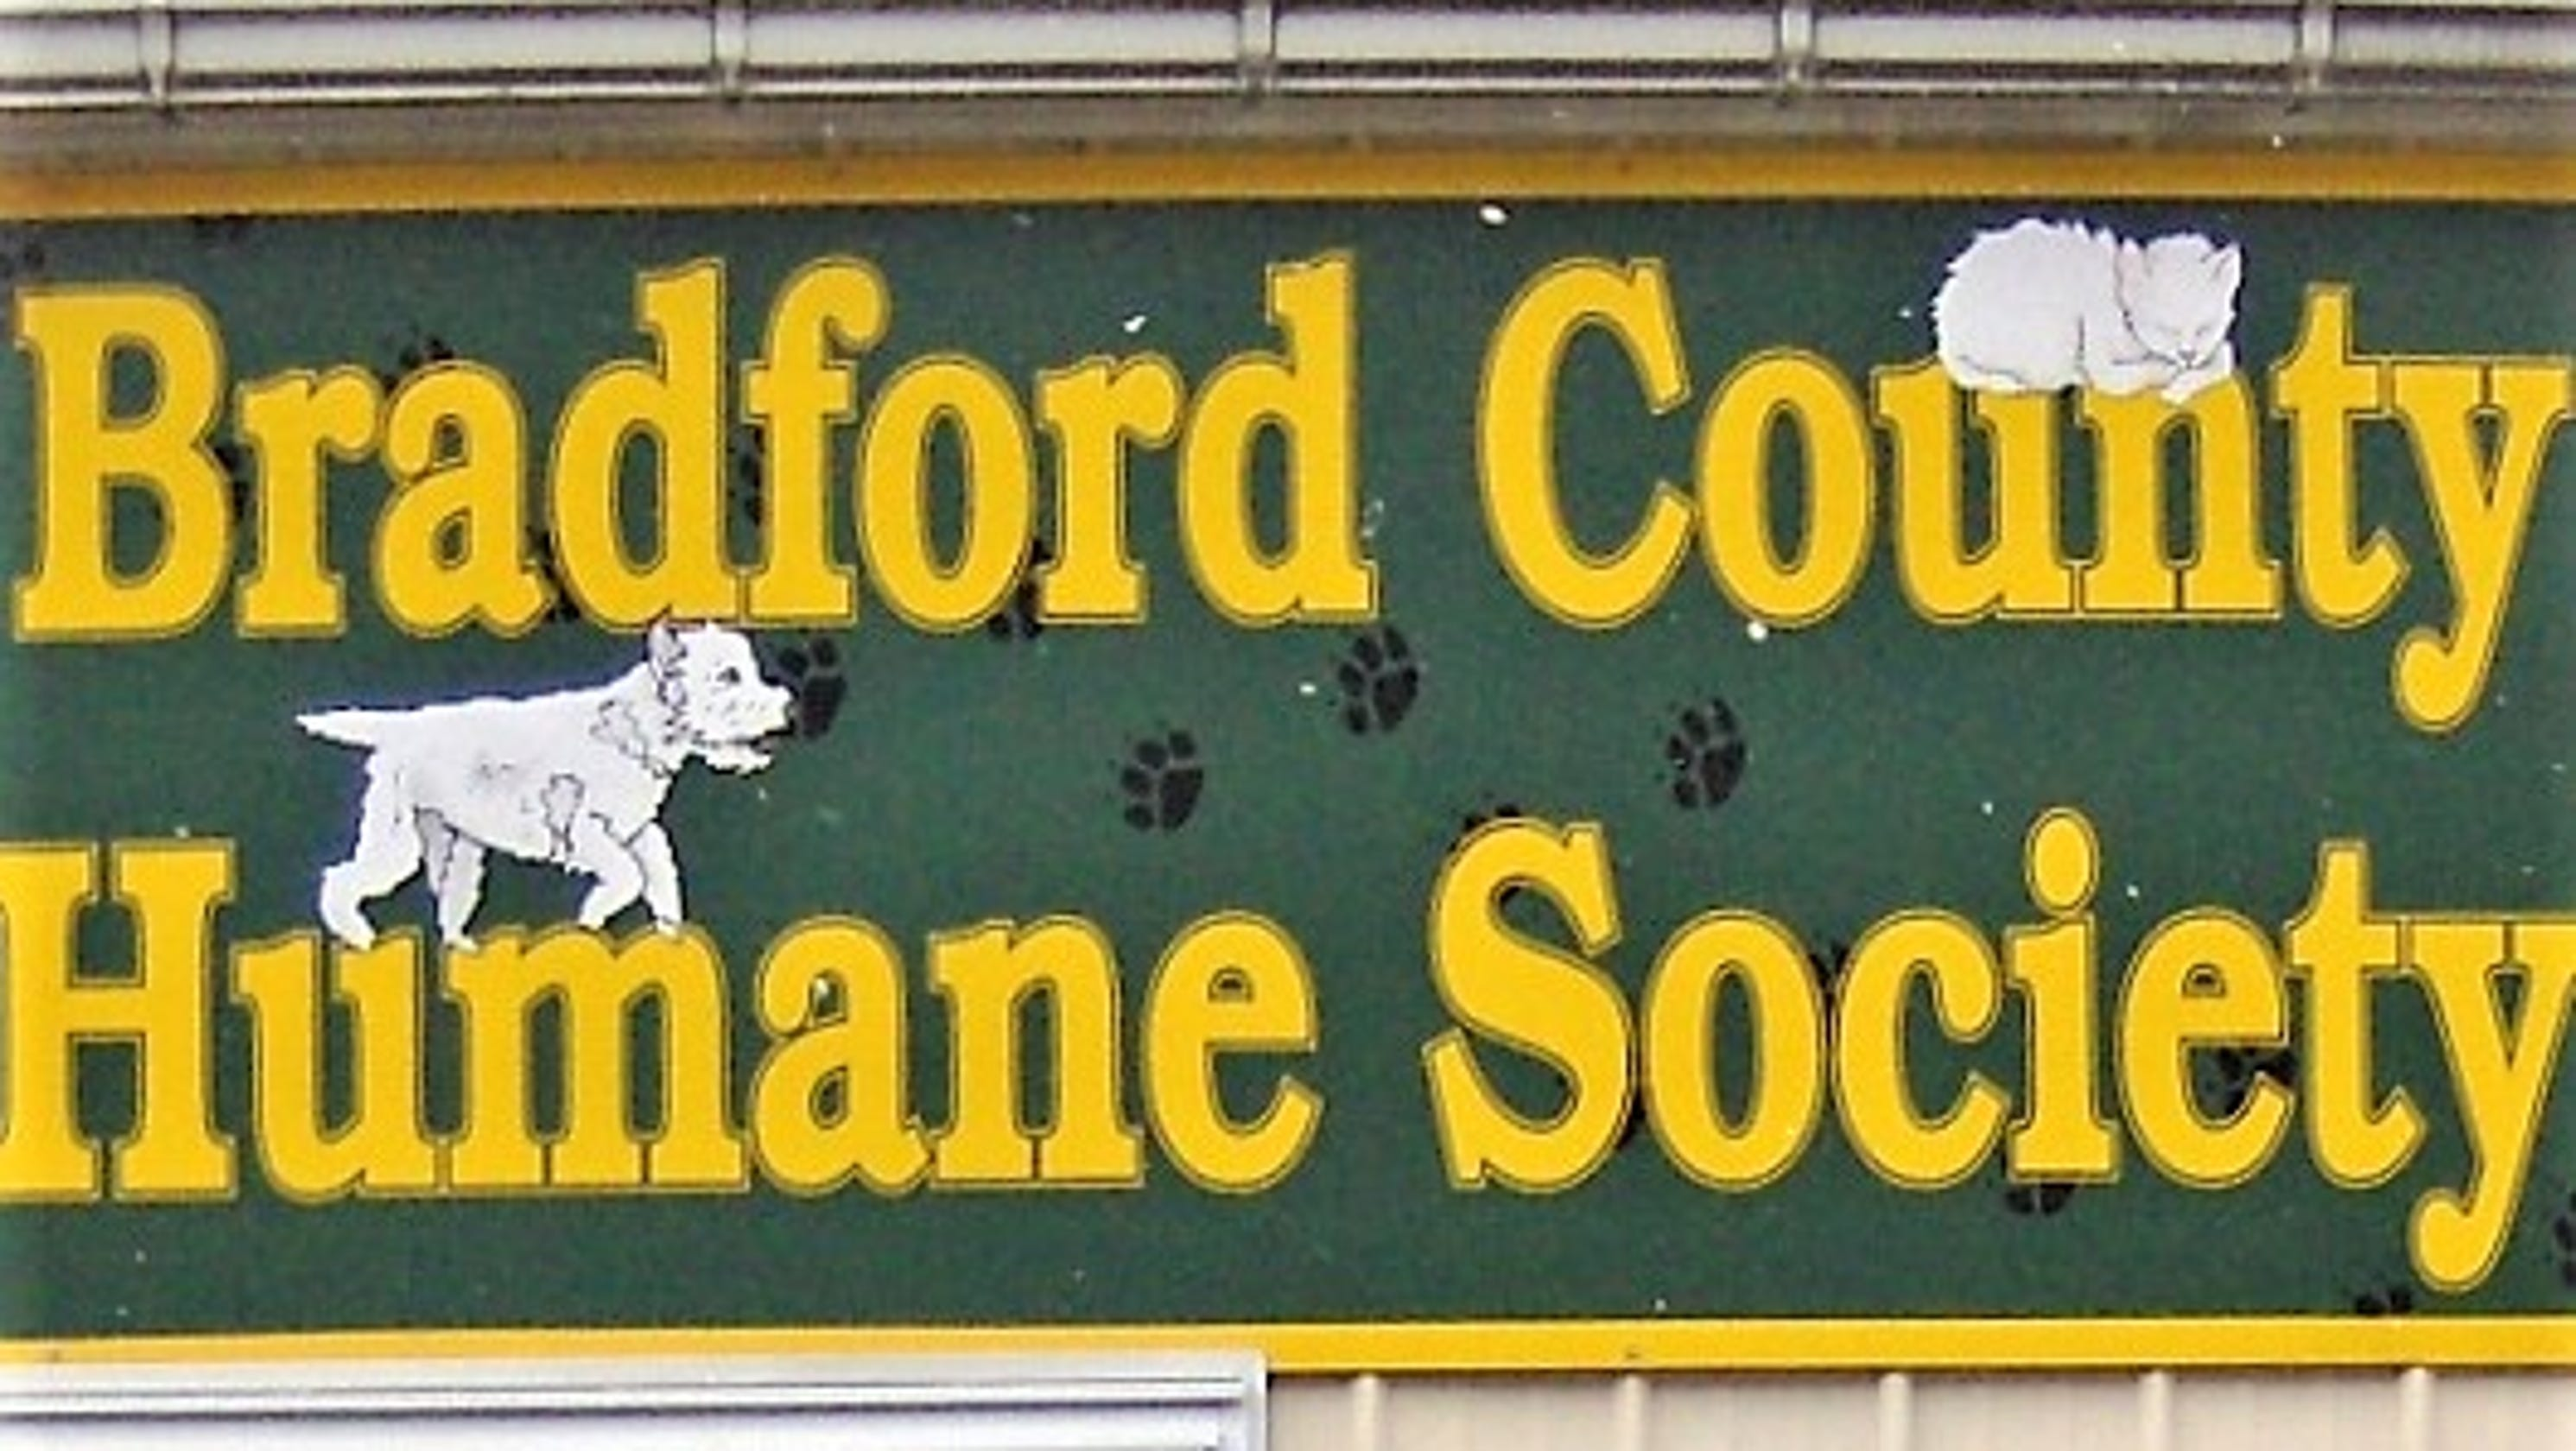 Bradford County Humane Society holds open house